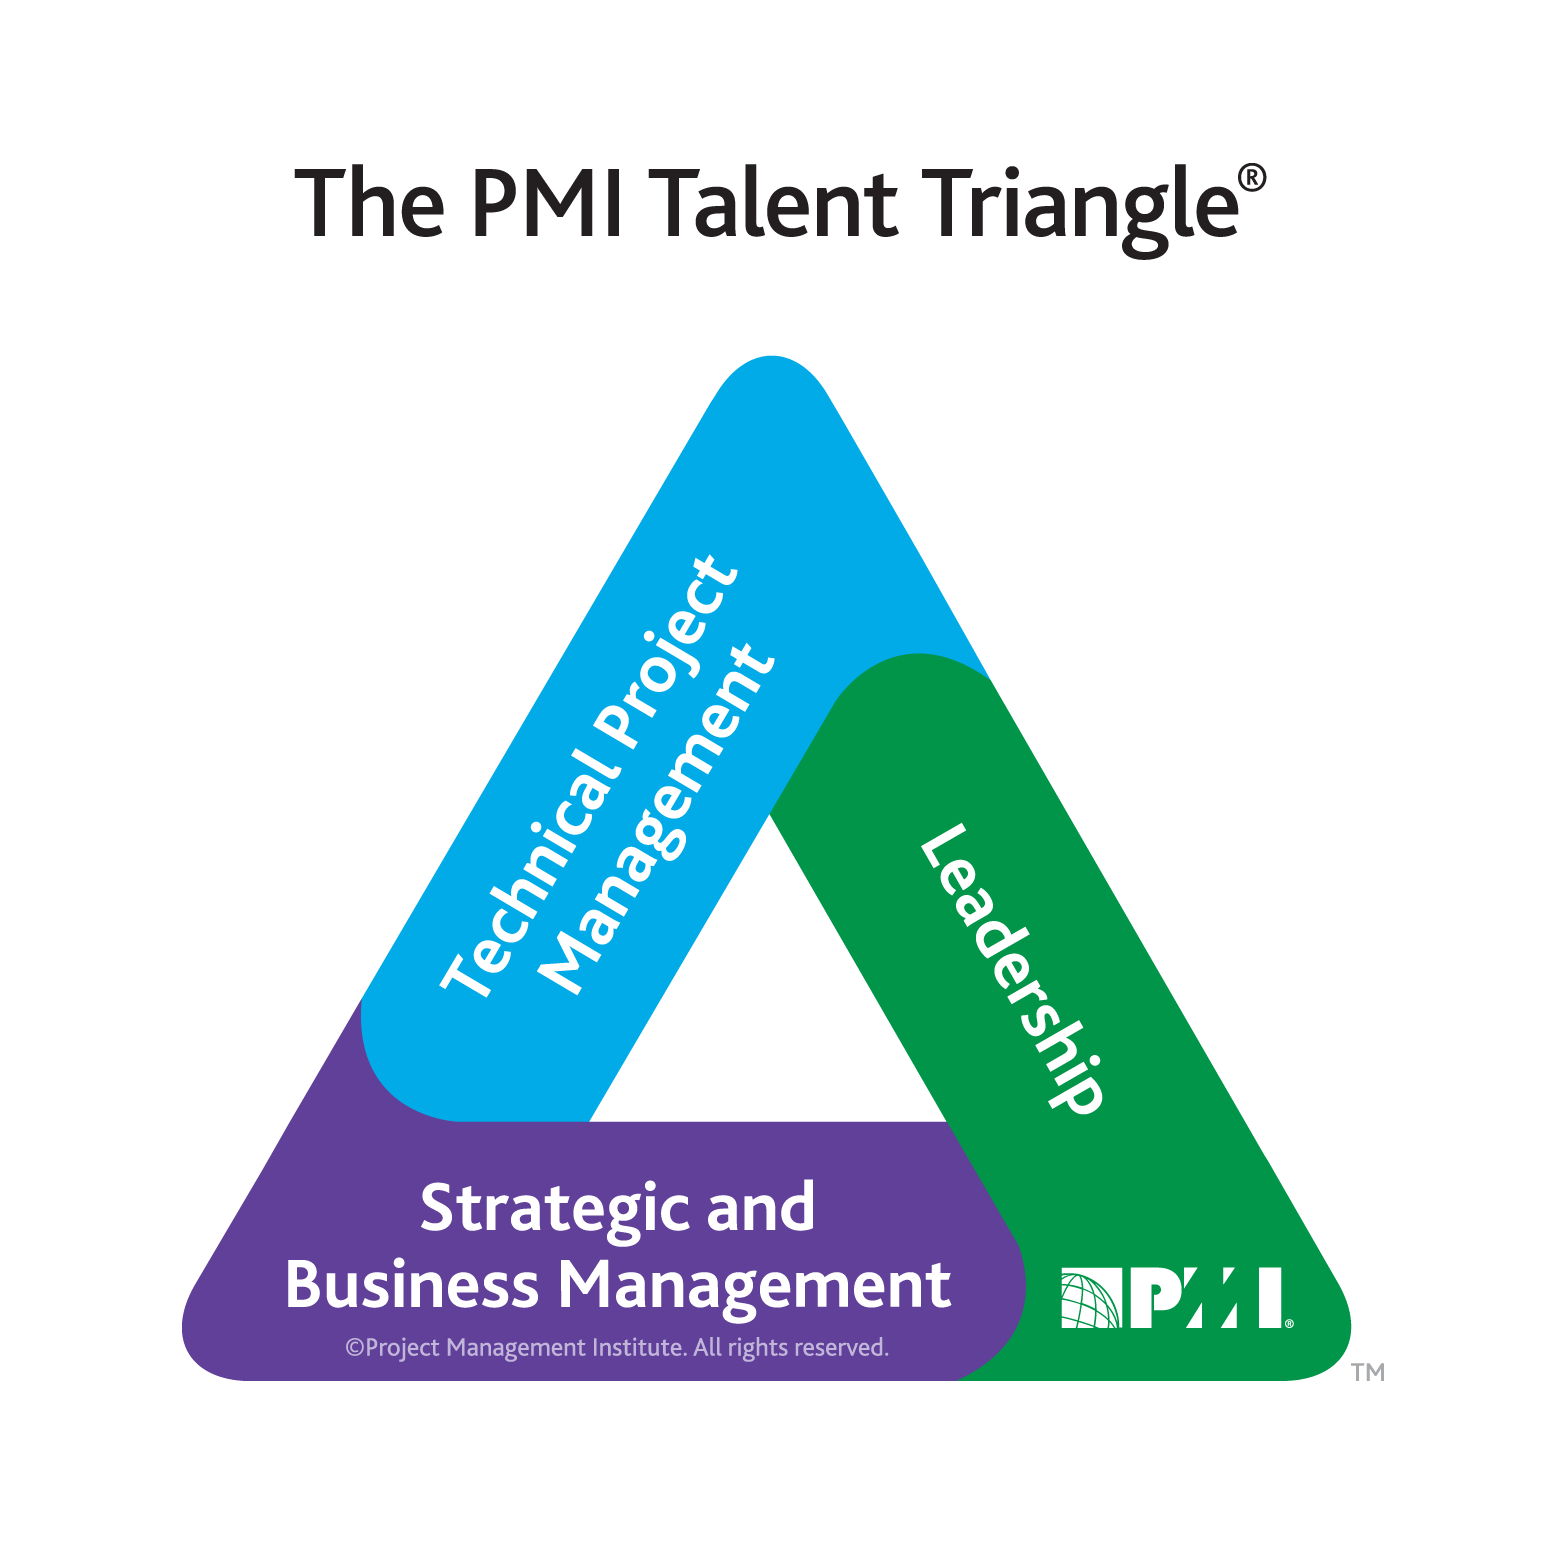 PMI Talent Triangle flat 03 06 2017